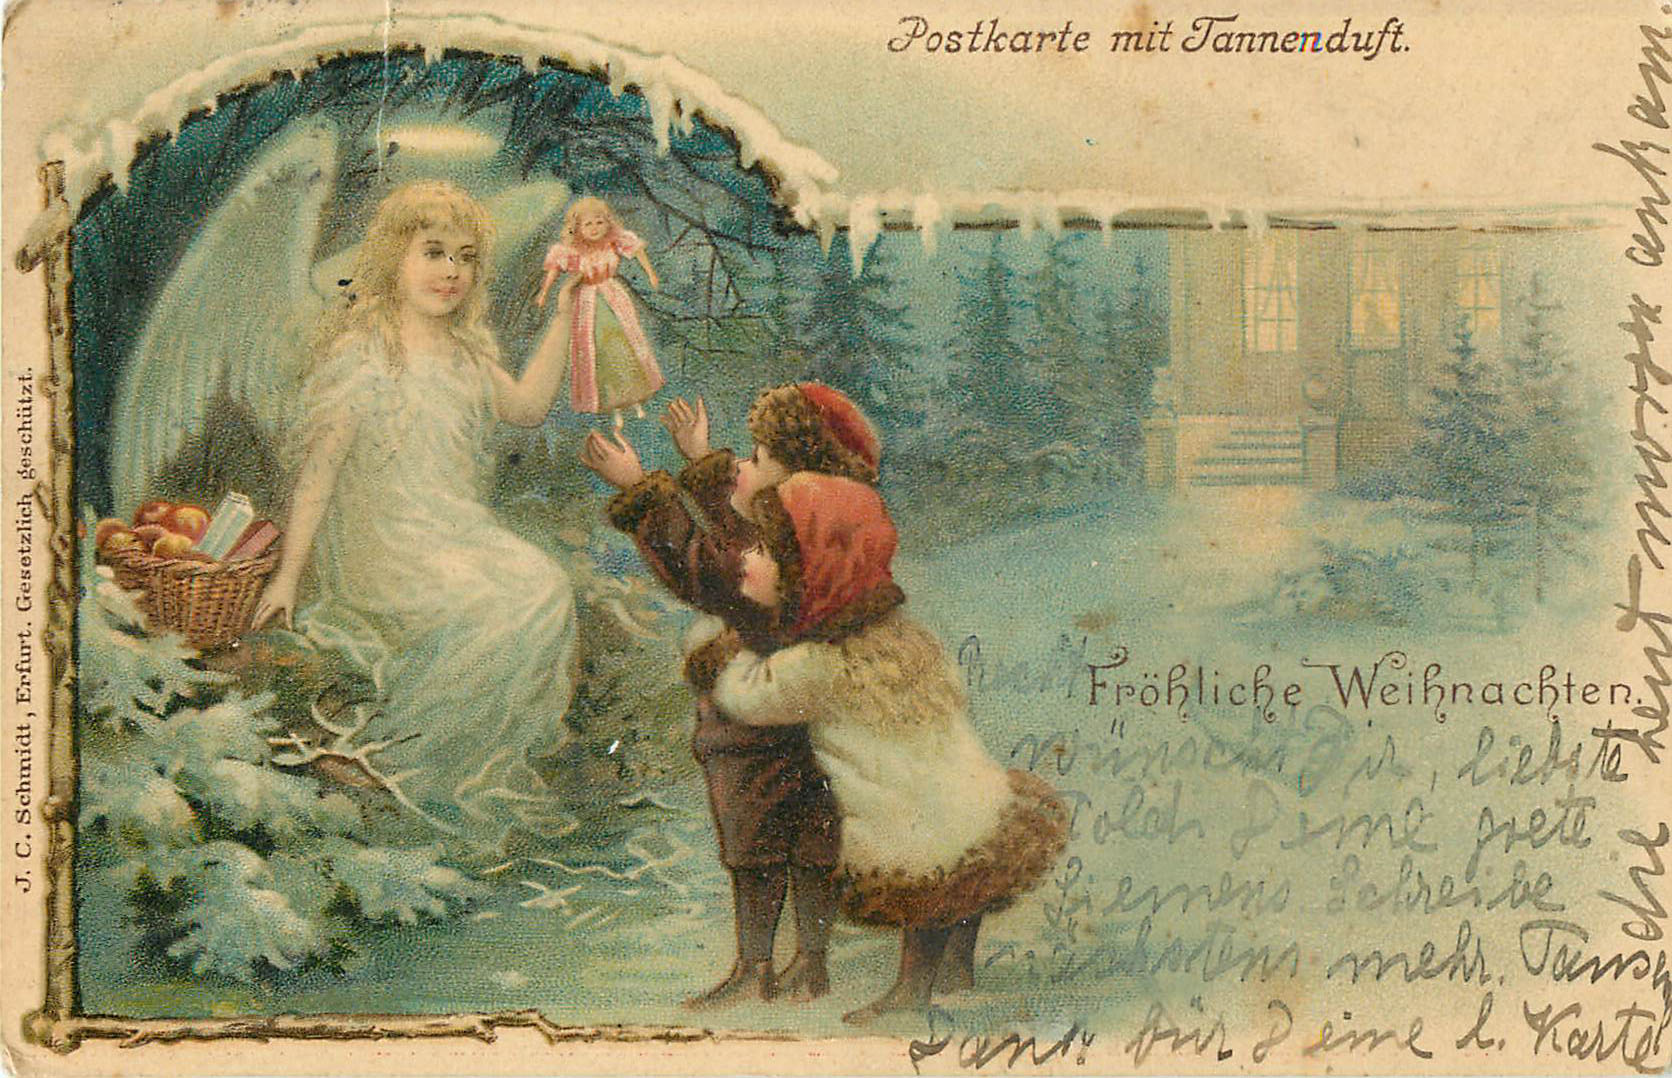 Frohliche Weihnachten - Angels with doll and small children